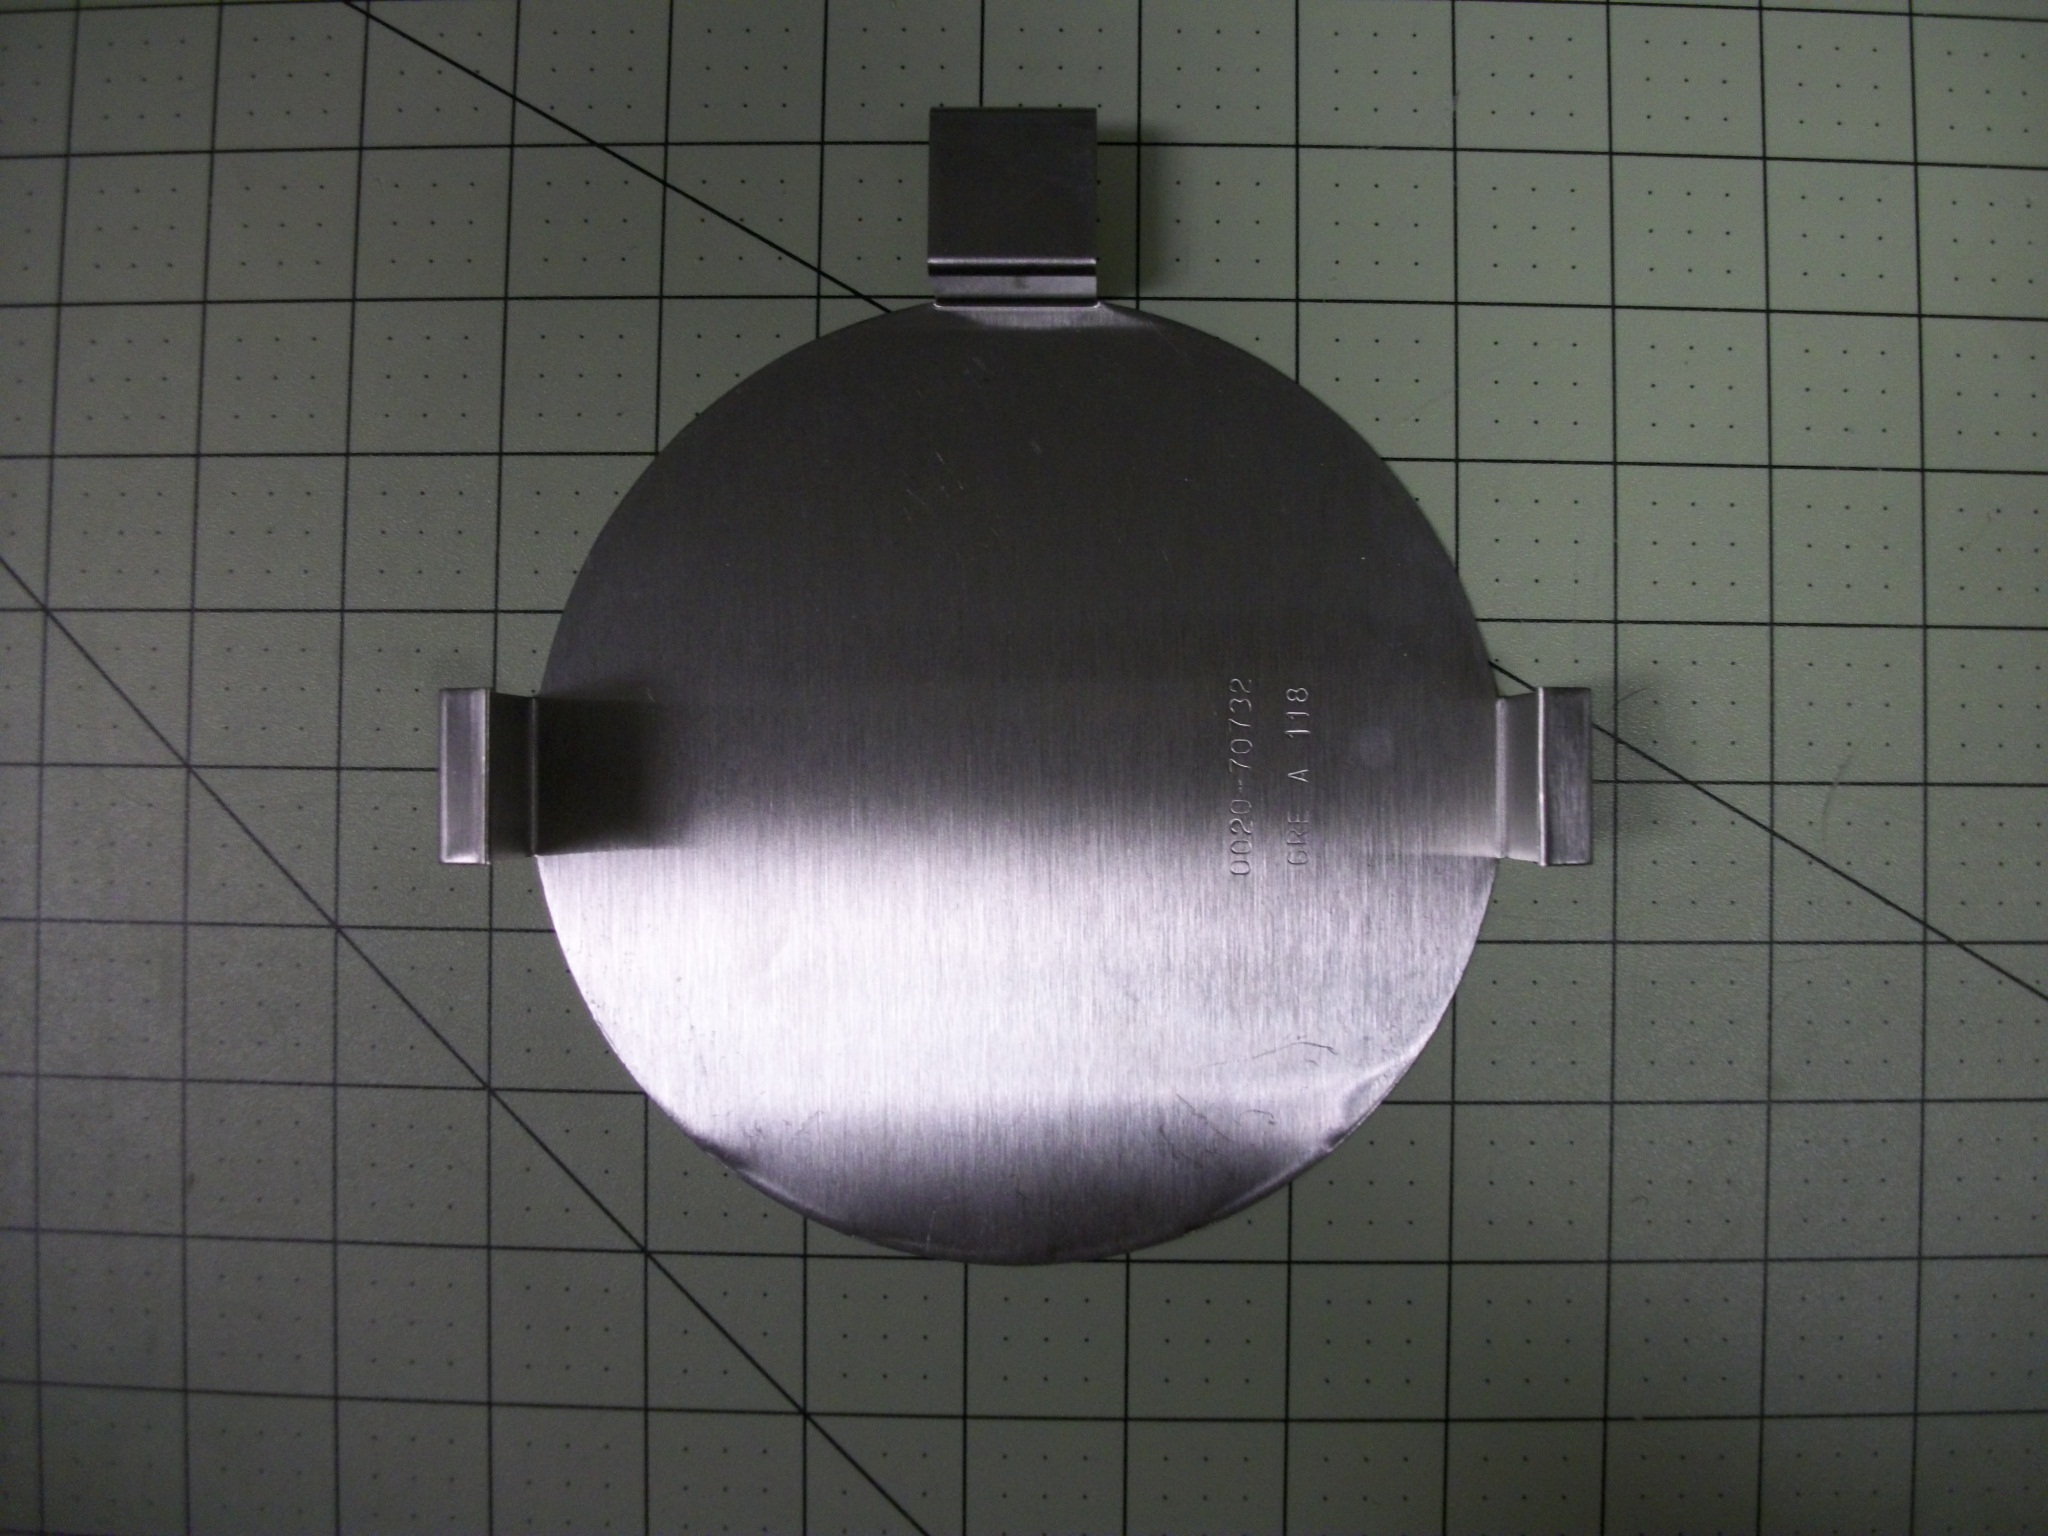 Cover, PVD chamber viewport